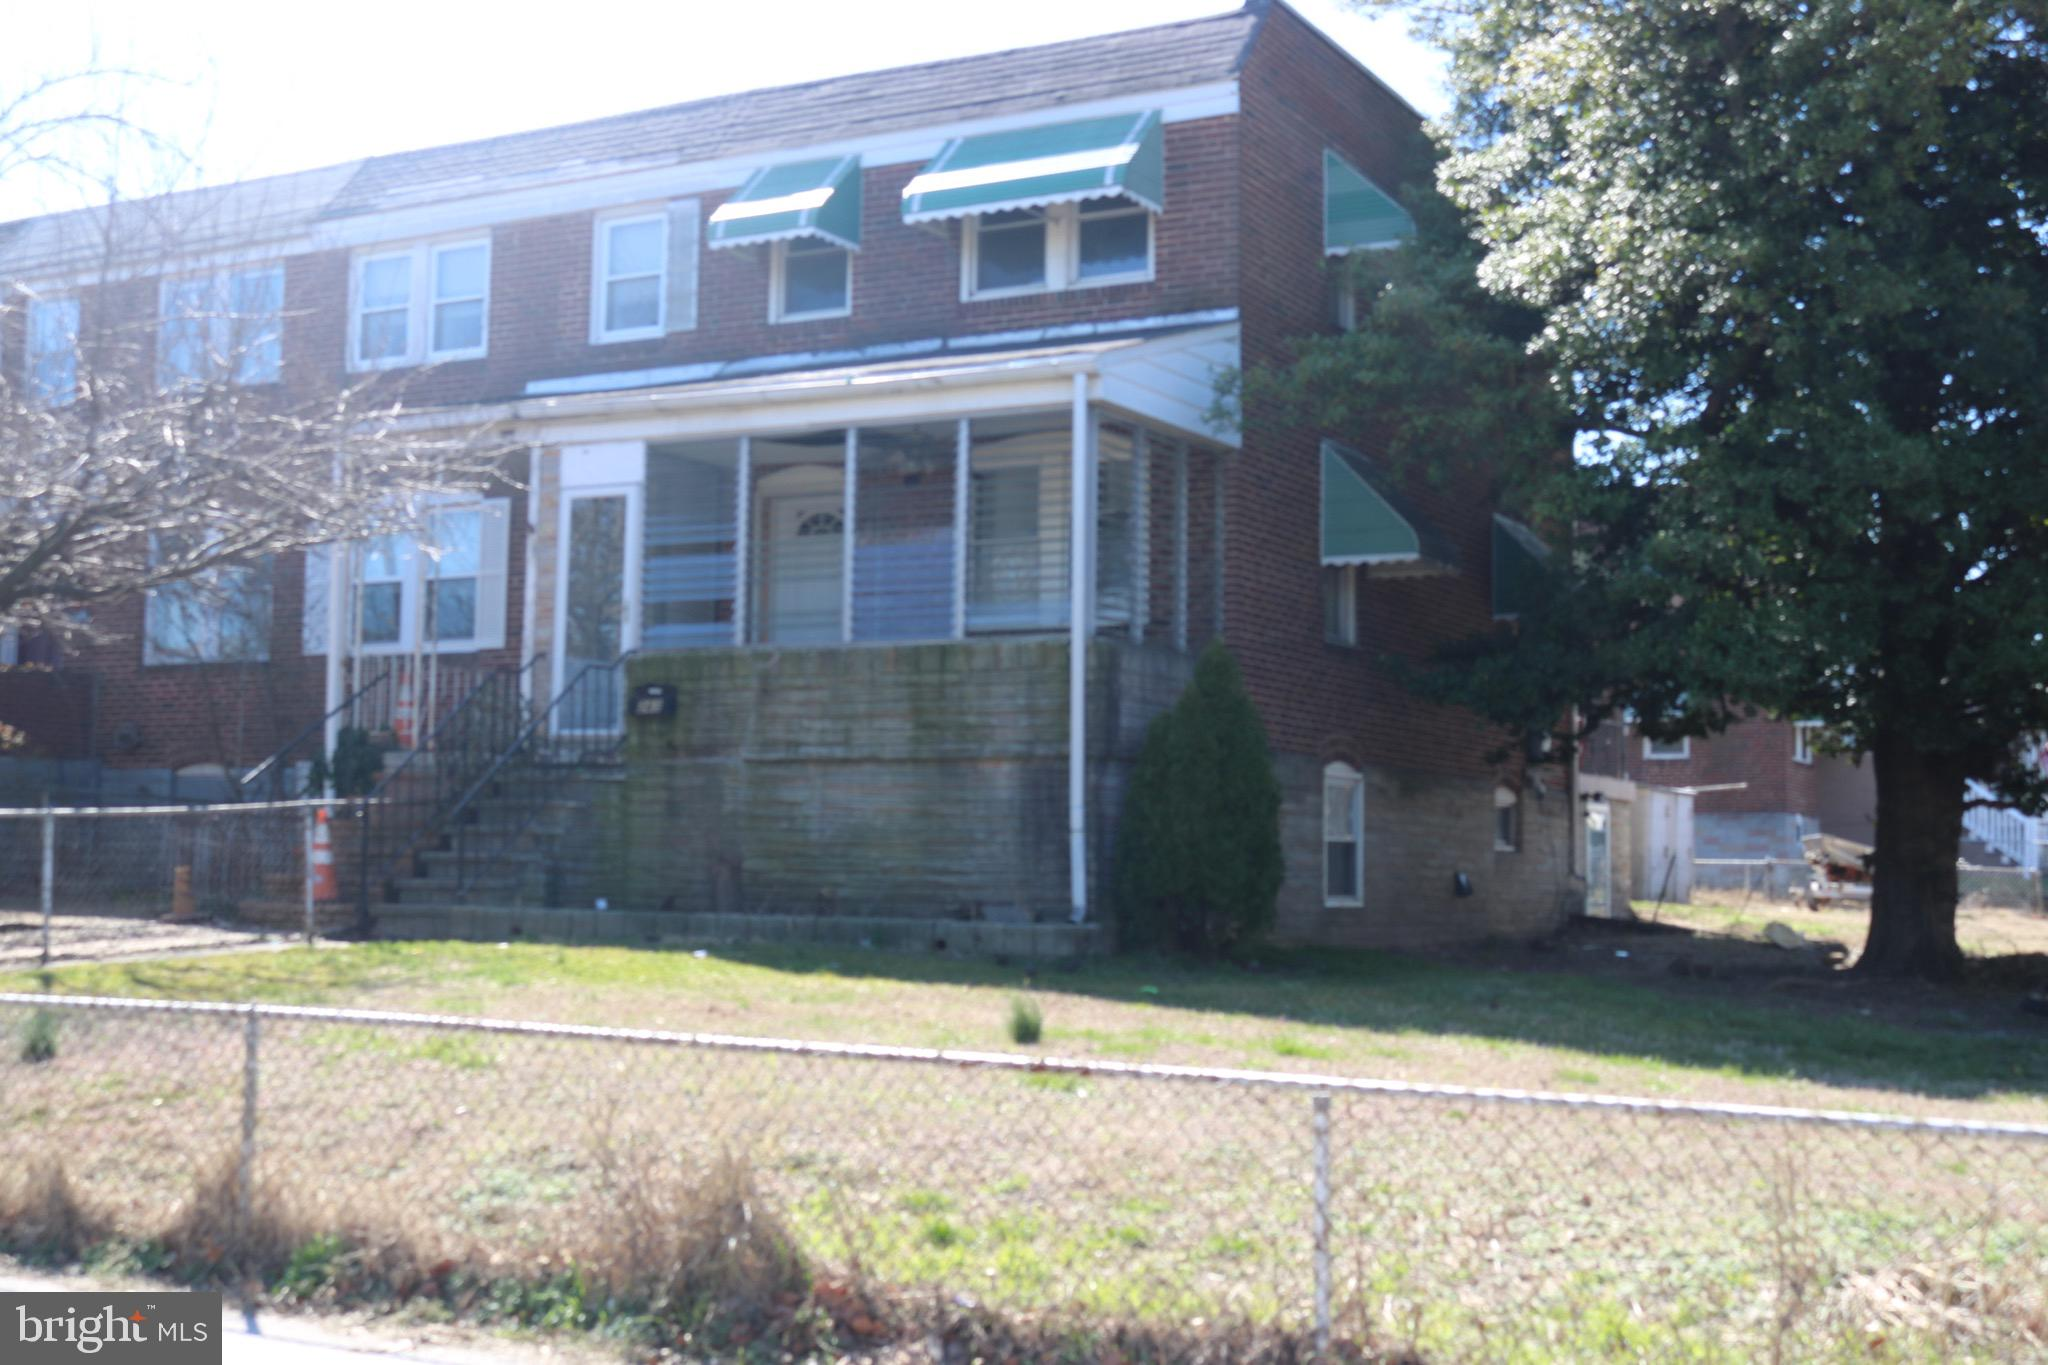 SHORT SALE. Brooklyn Park, LARGE END OF GROUP with lots of potential. Possible in law suite in lower level.  2 washer/dryer hookups in home. Wrap around yard with space in back for parking. Wood floors throughout. Sold as is. Convenient location and easy access to major highways.